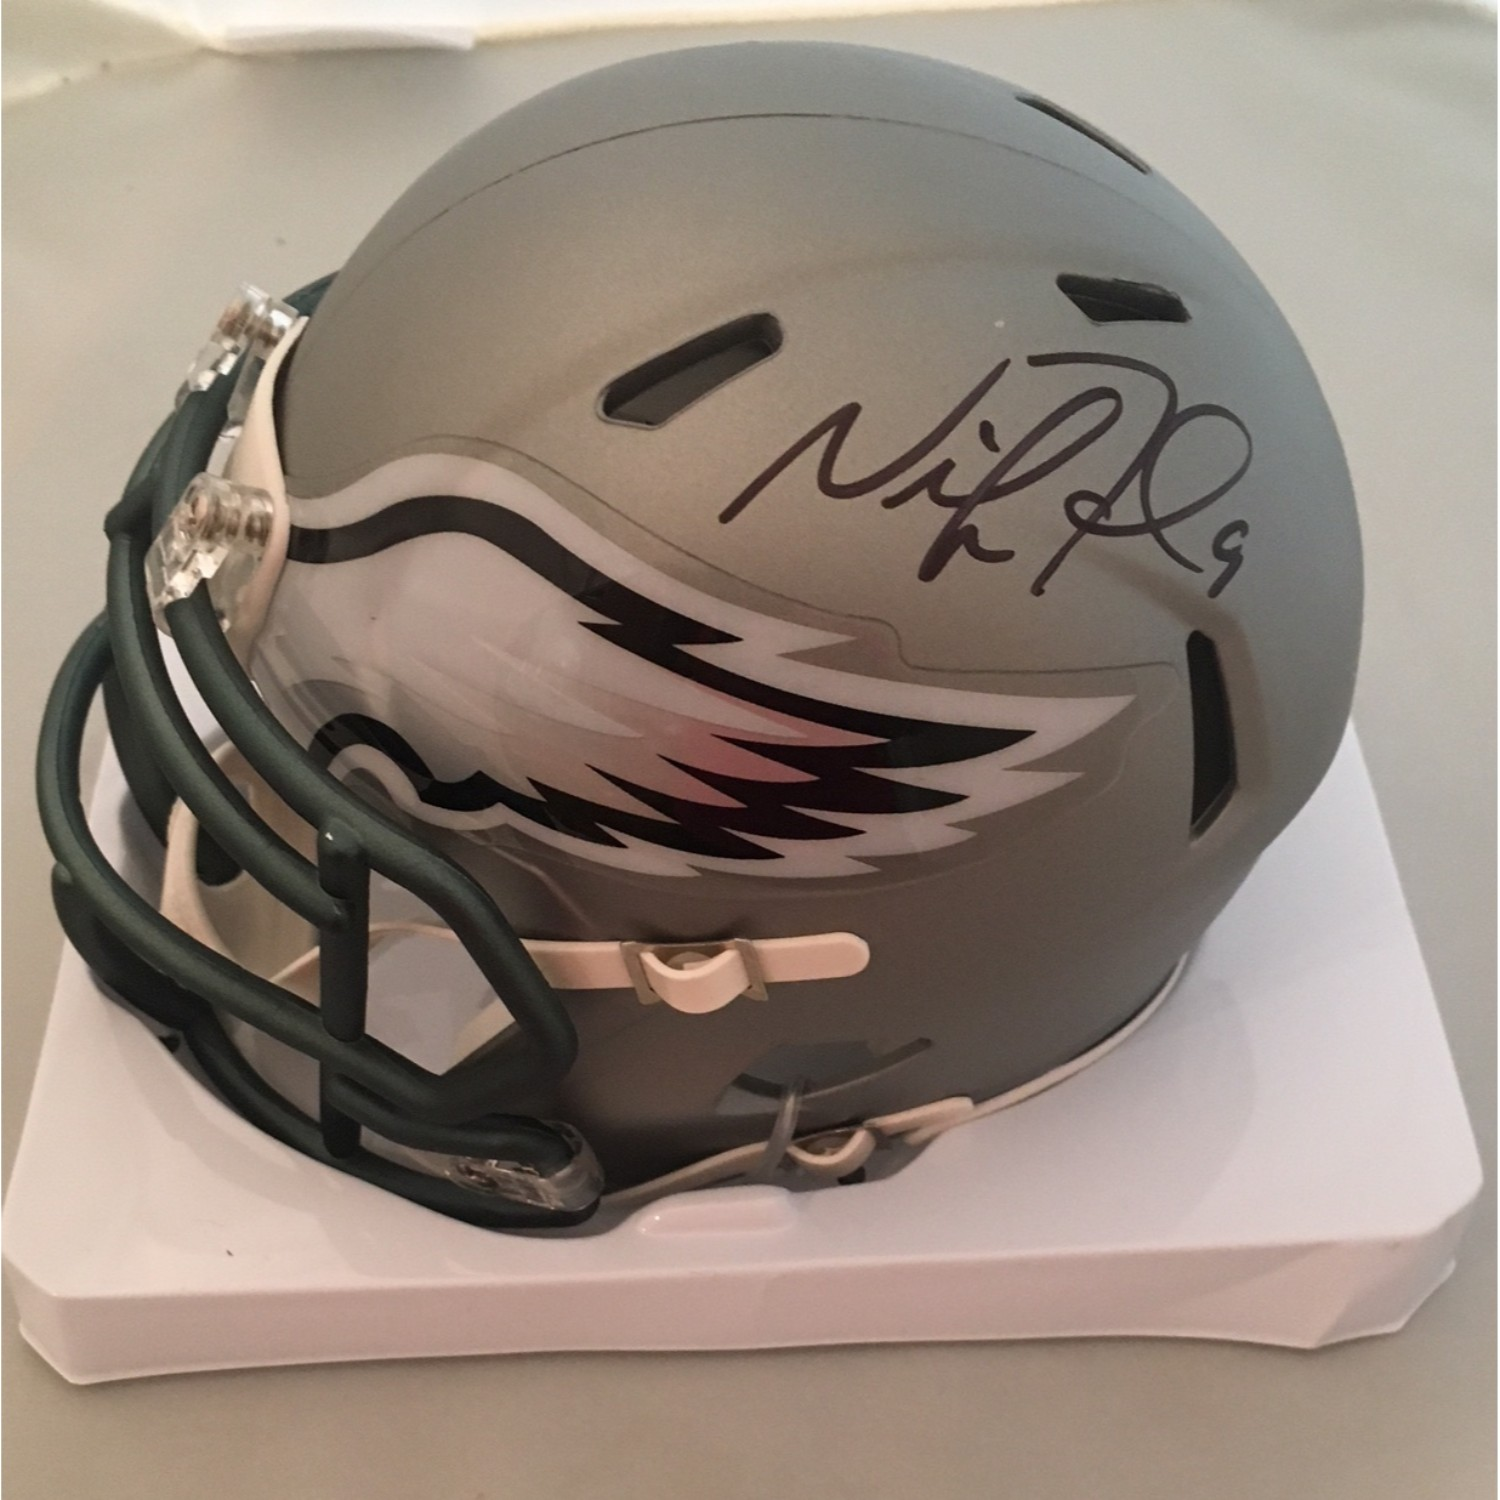 Nick Foles Autographed Philadelphia Eagles Super Bowl 52 MVP Signed Blaze Mini Helmet PSA DNA COA 2